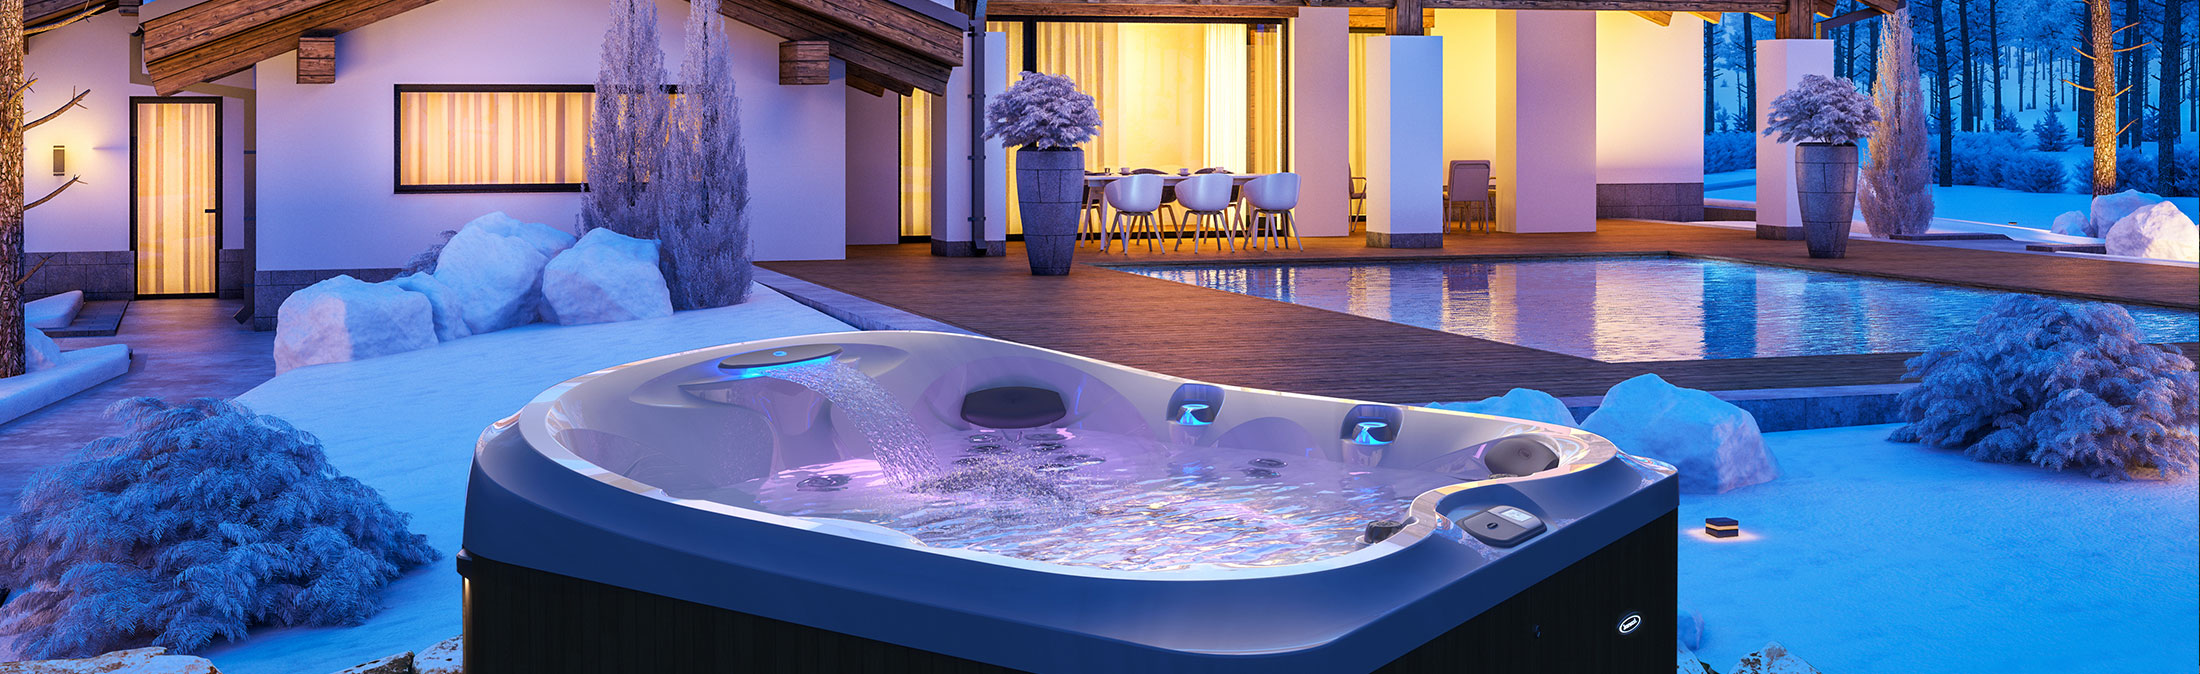 Paradise Pool and Spa Hot Tubs